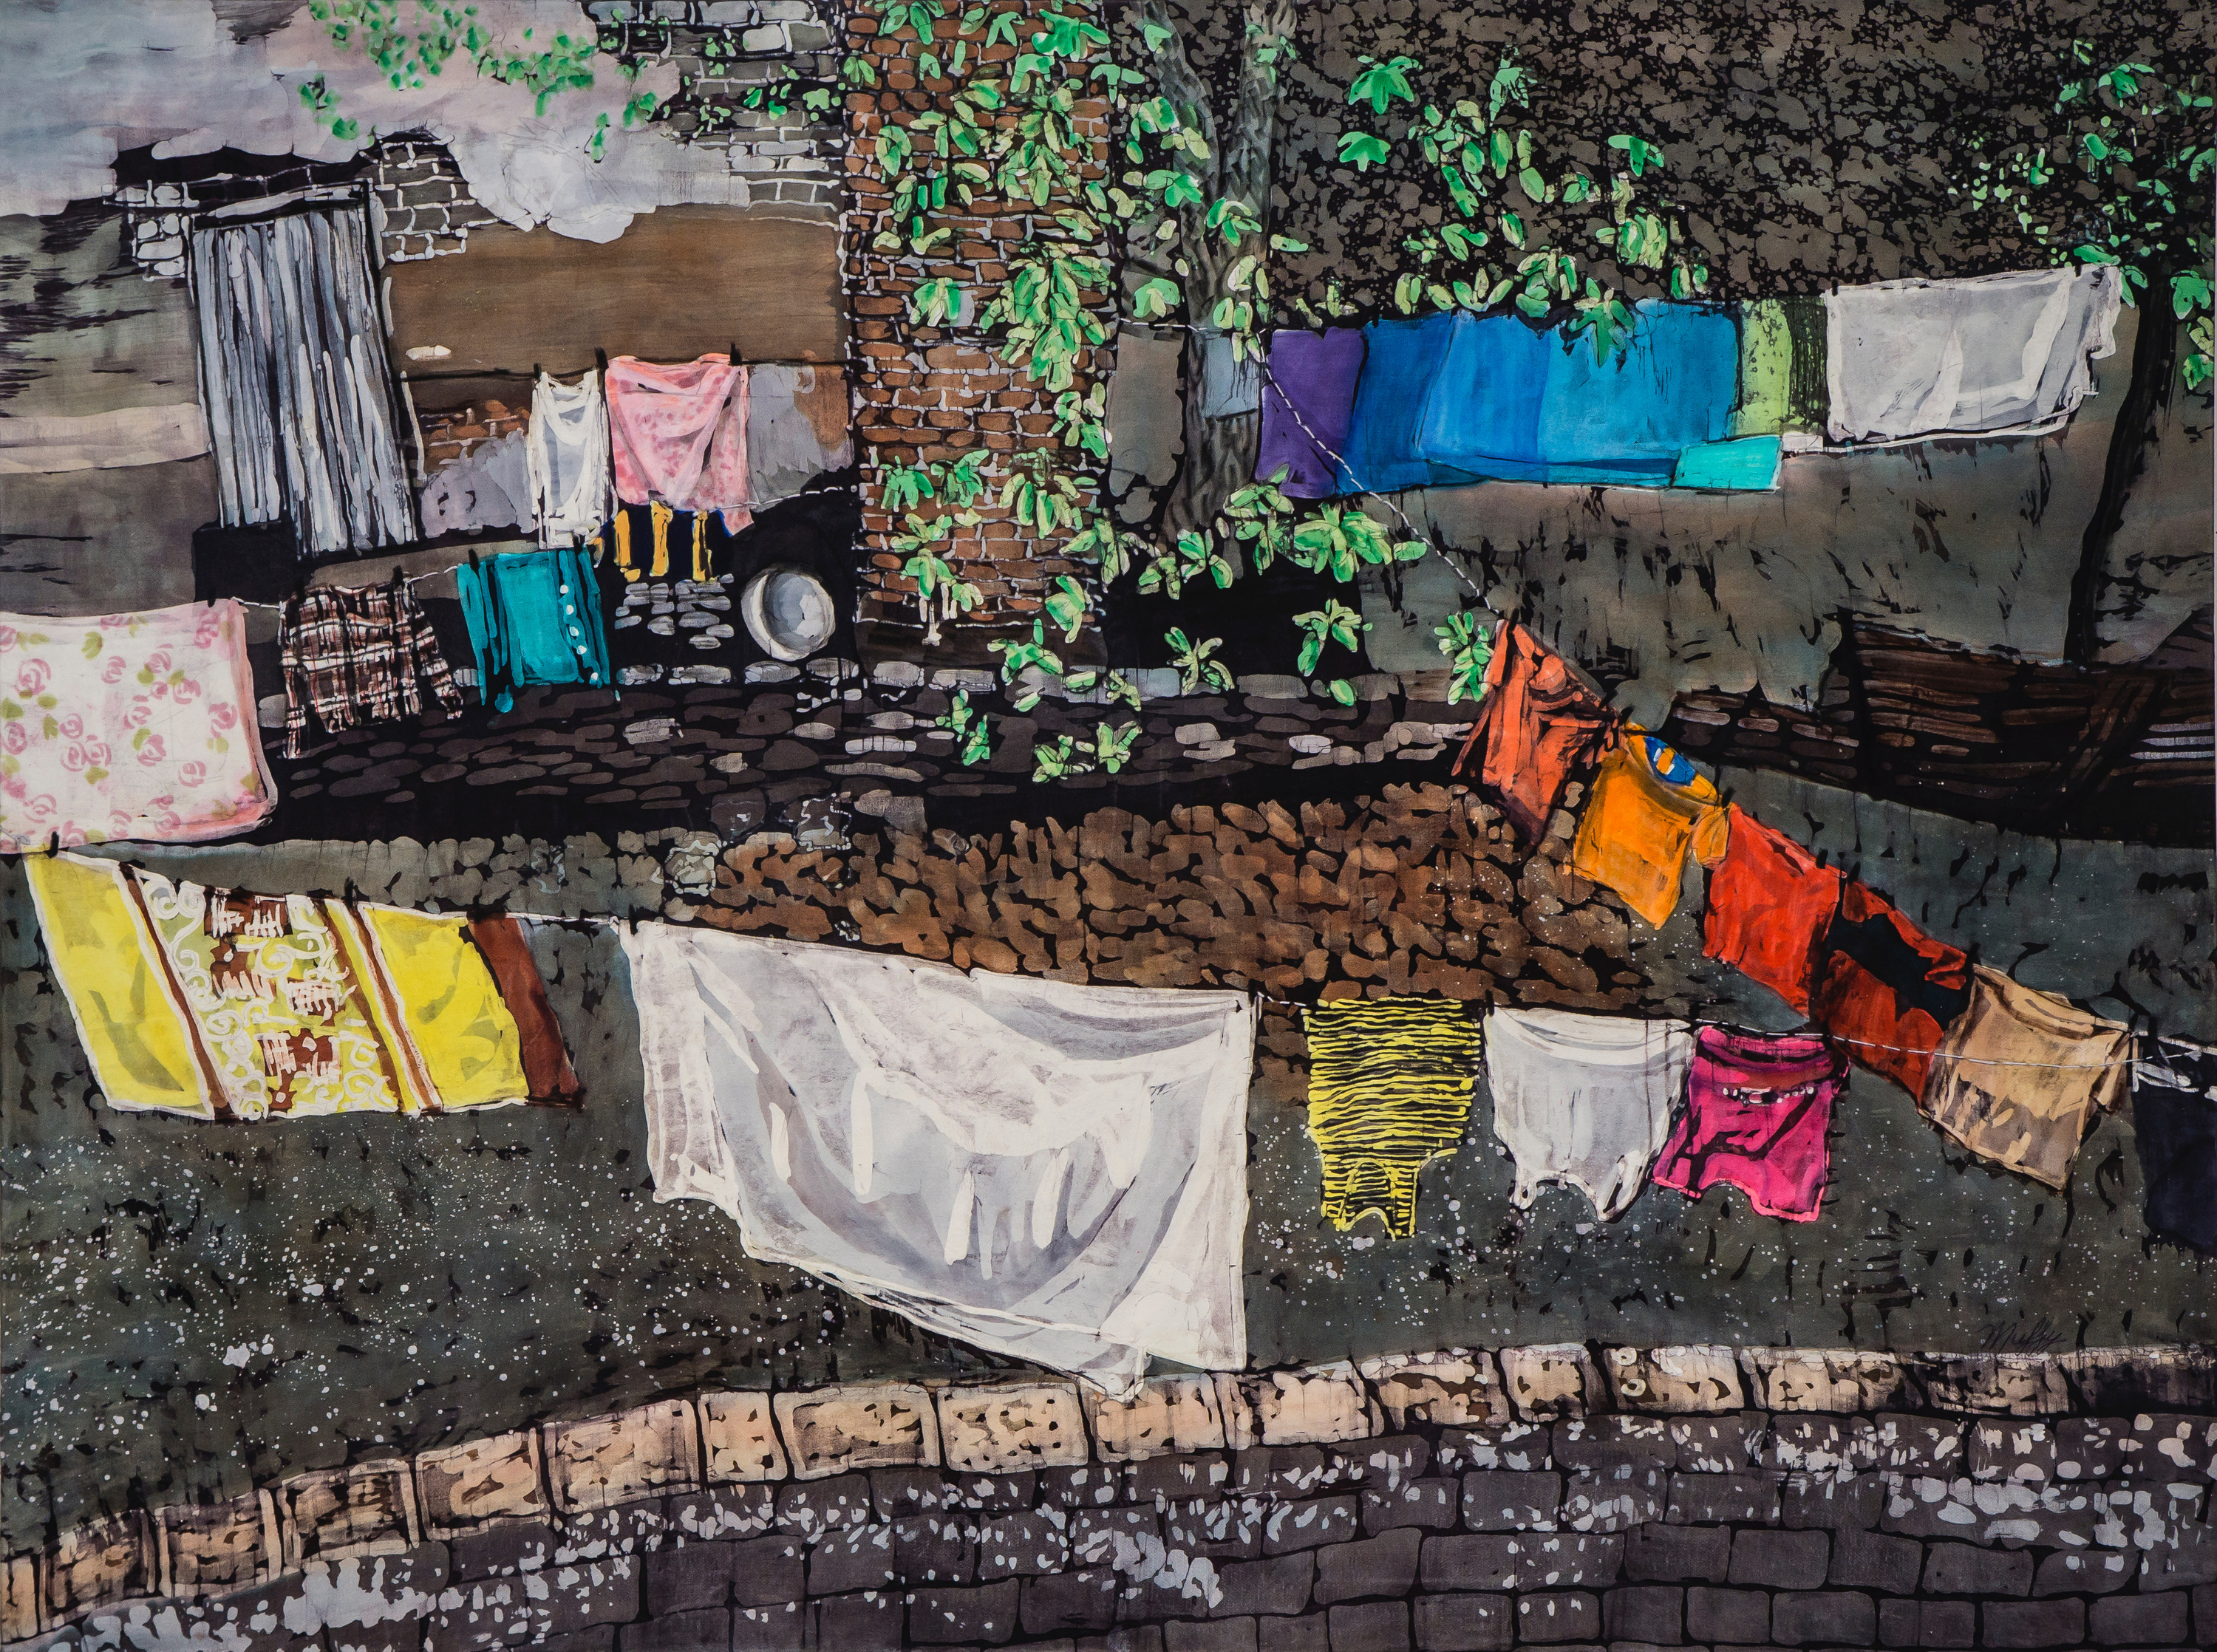 Muffy clark gill wash day cuban courtyards rozome on silk 30 x 40 in tnrgqm